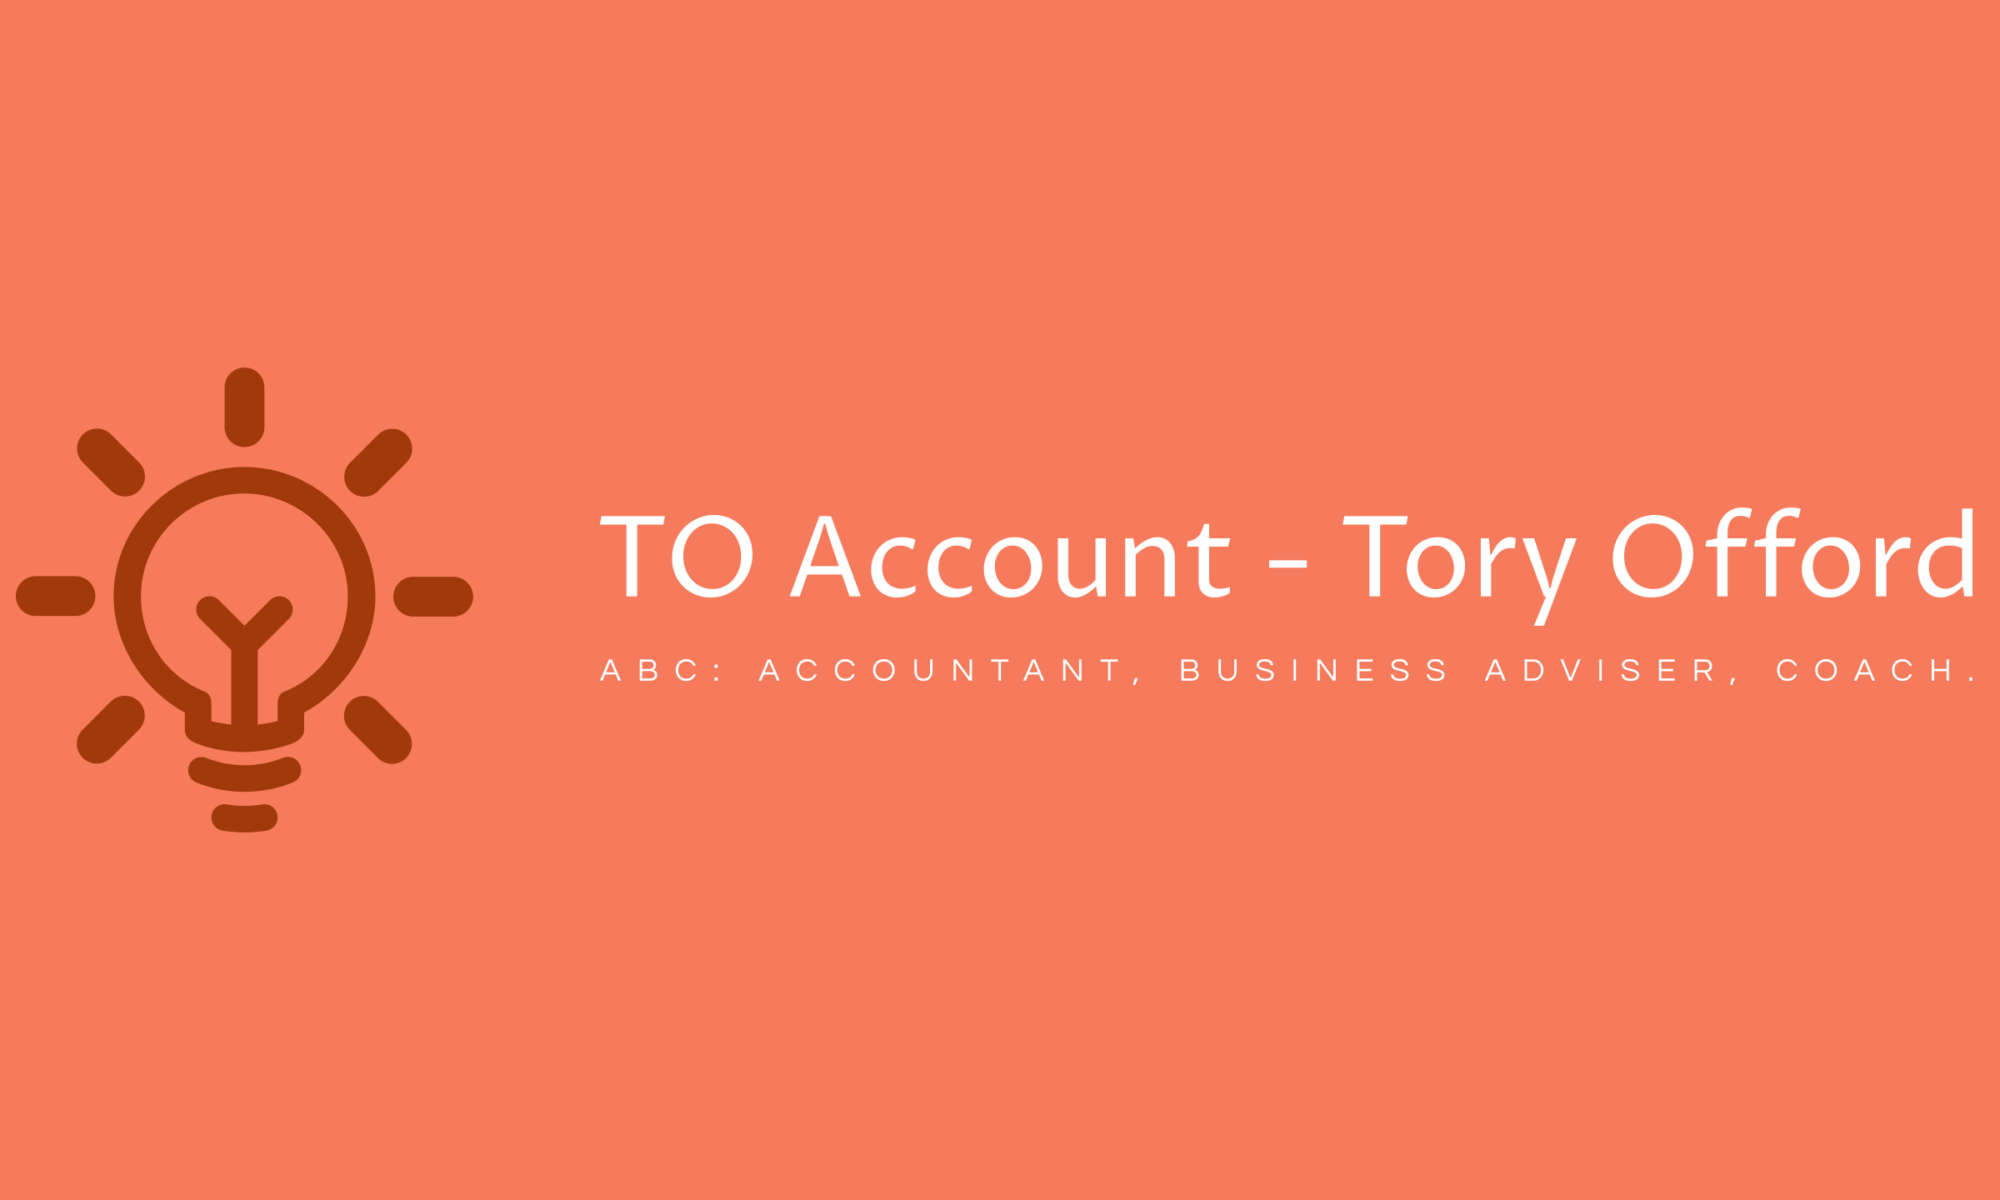 Tory Offord